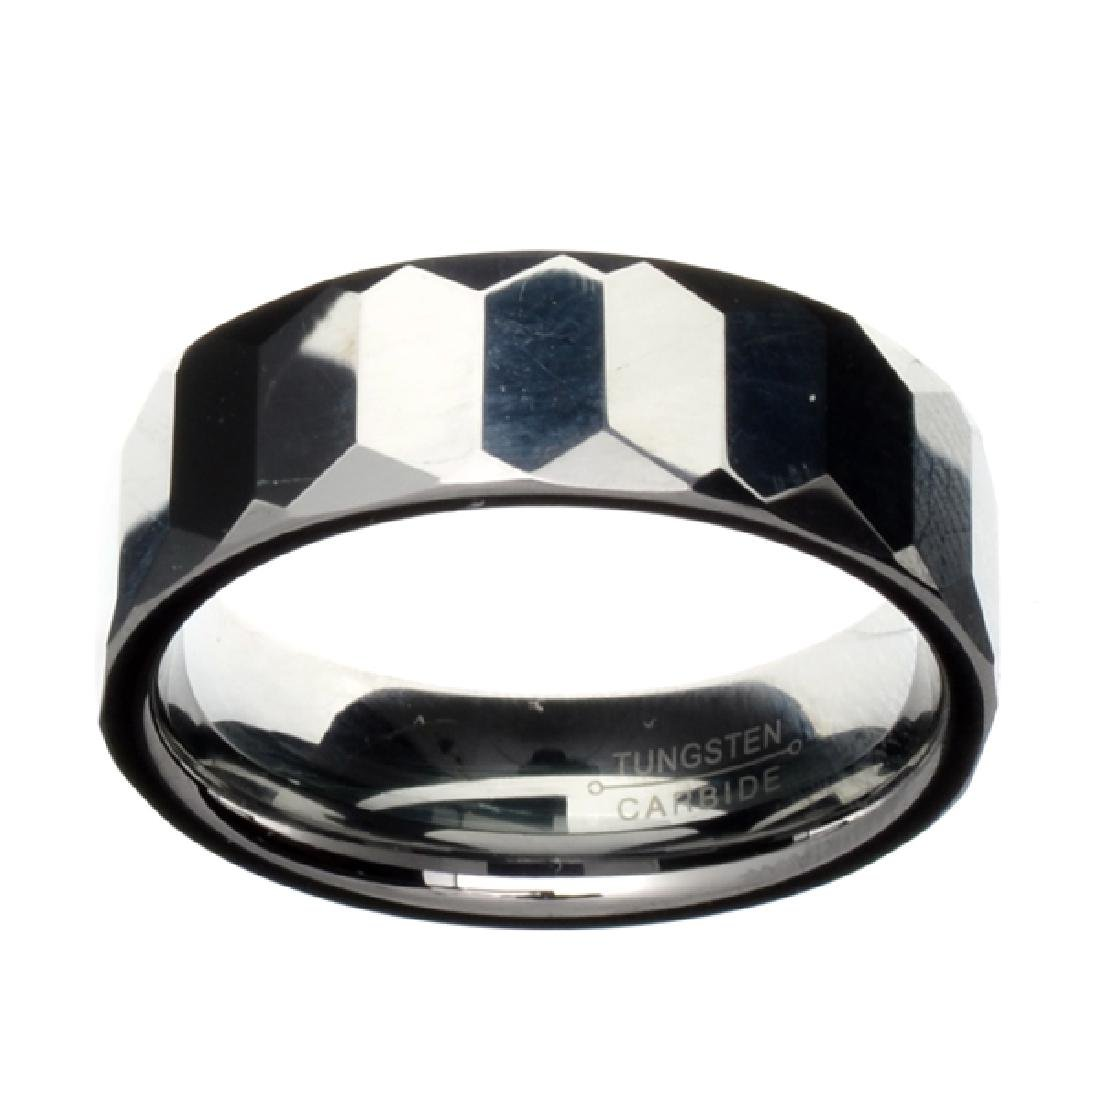 Rare Tungsten Size 15 Ring